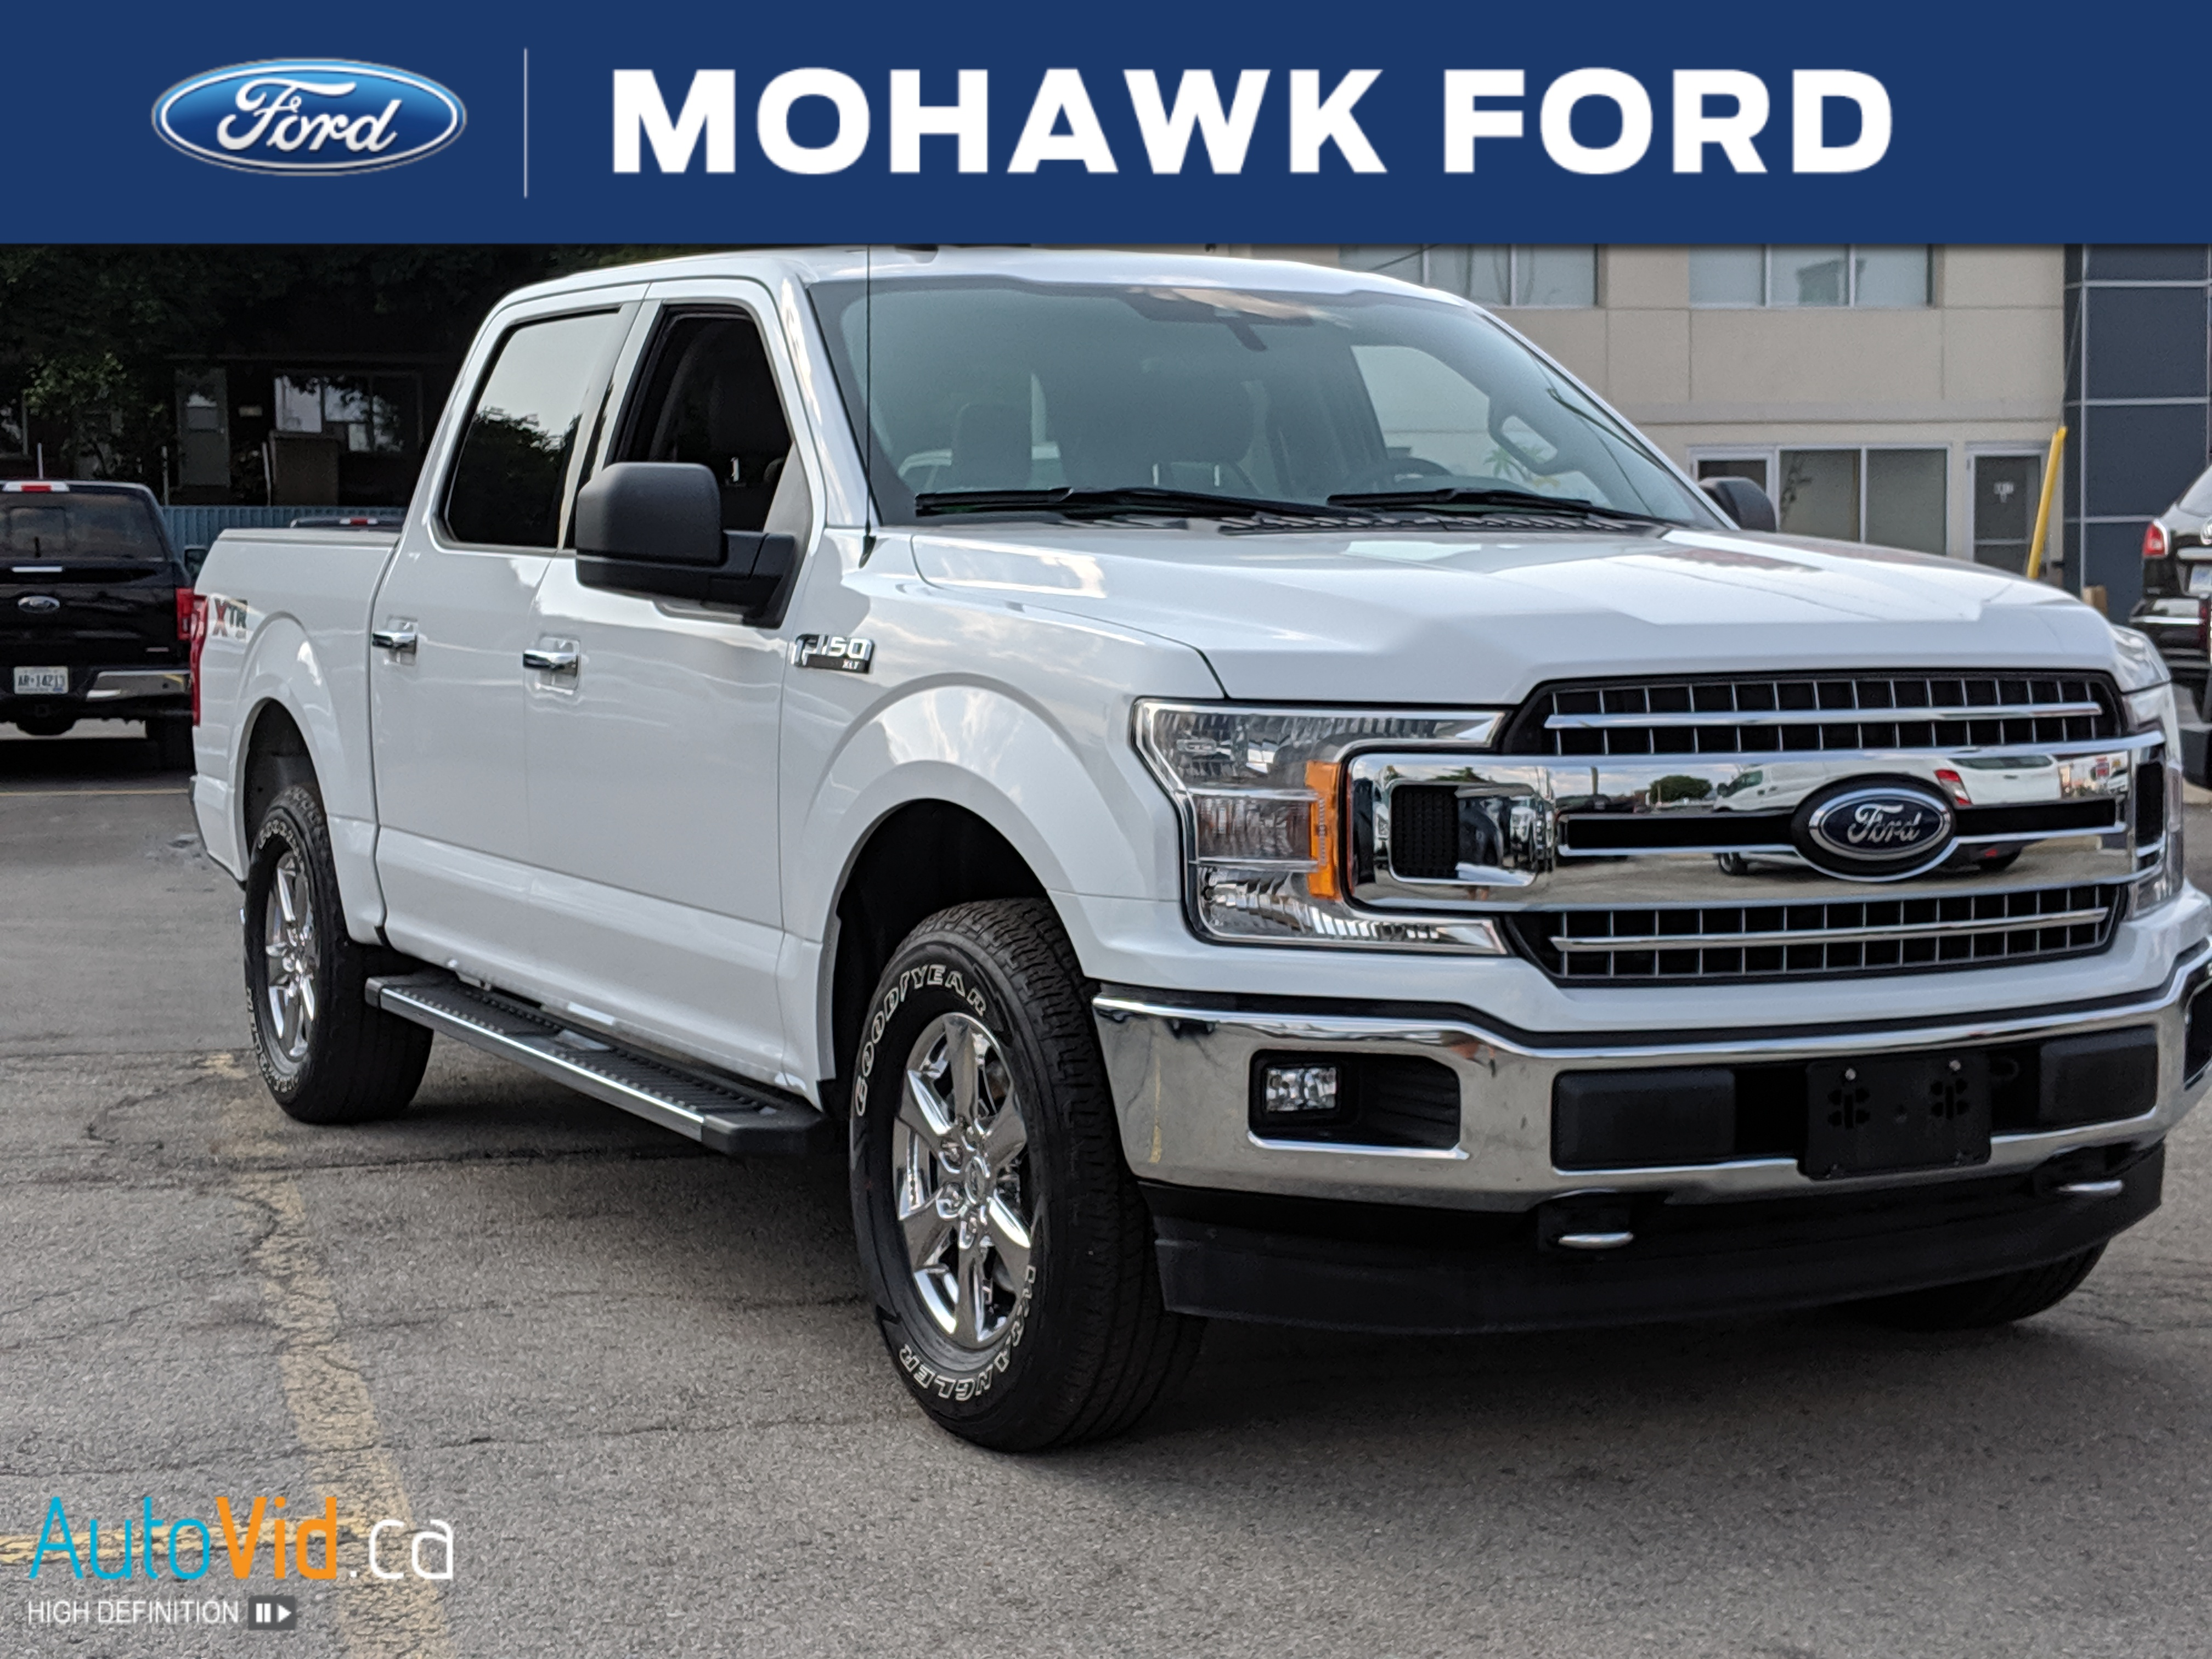 Ford Used Trucks >> Used Cars Trucks Suvs For Sale In Hamilton Mohawk Ford